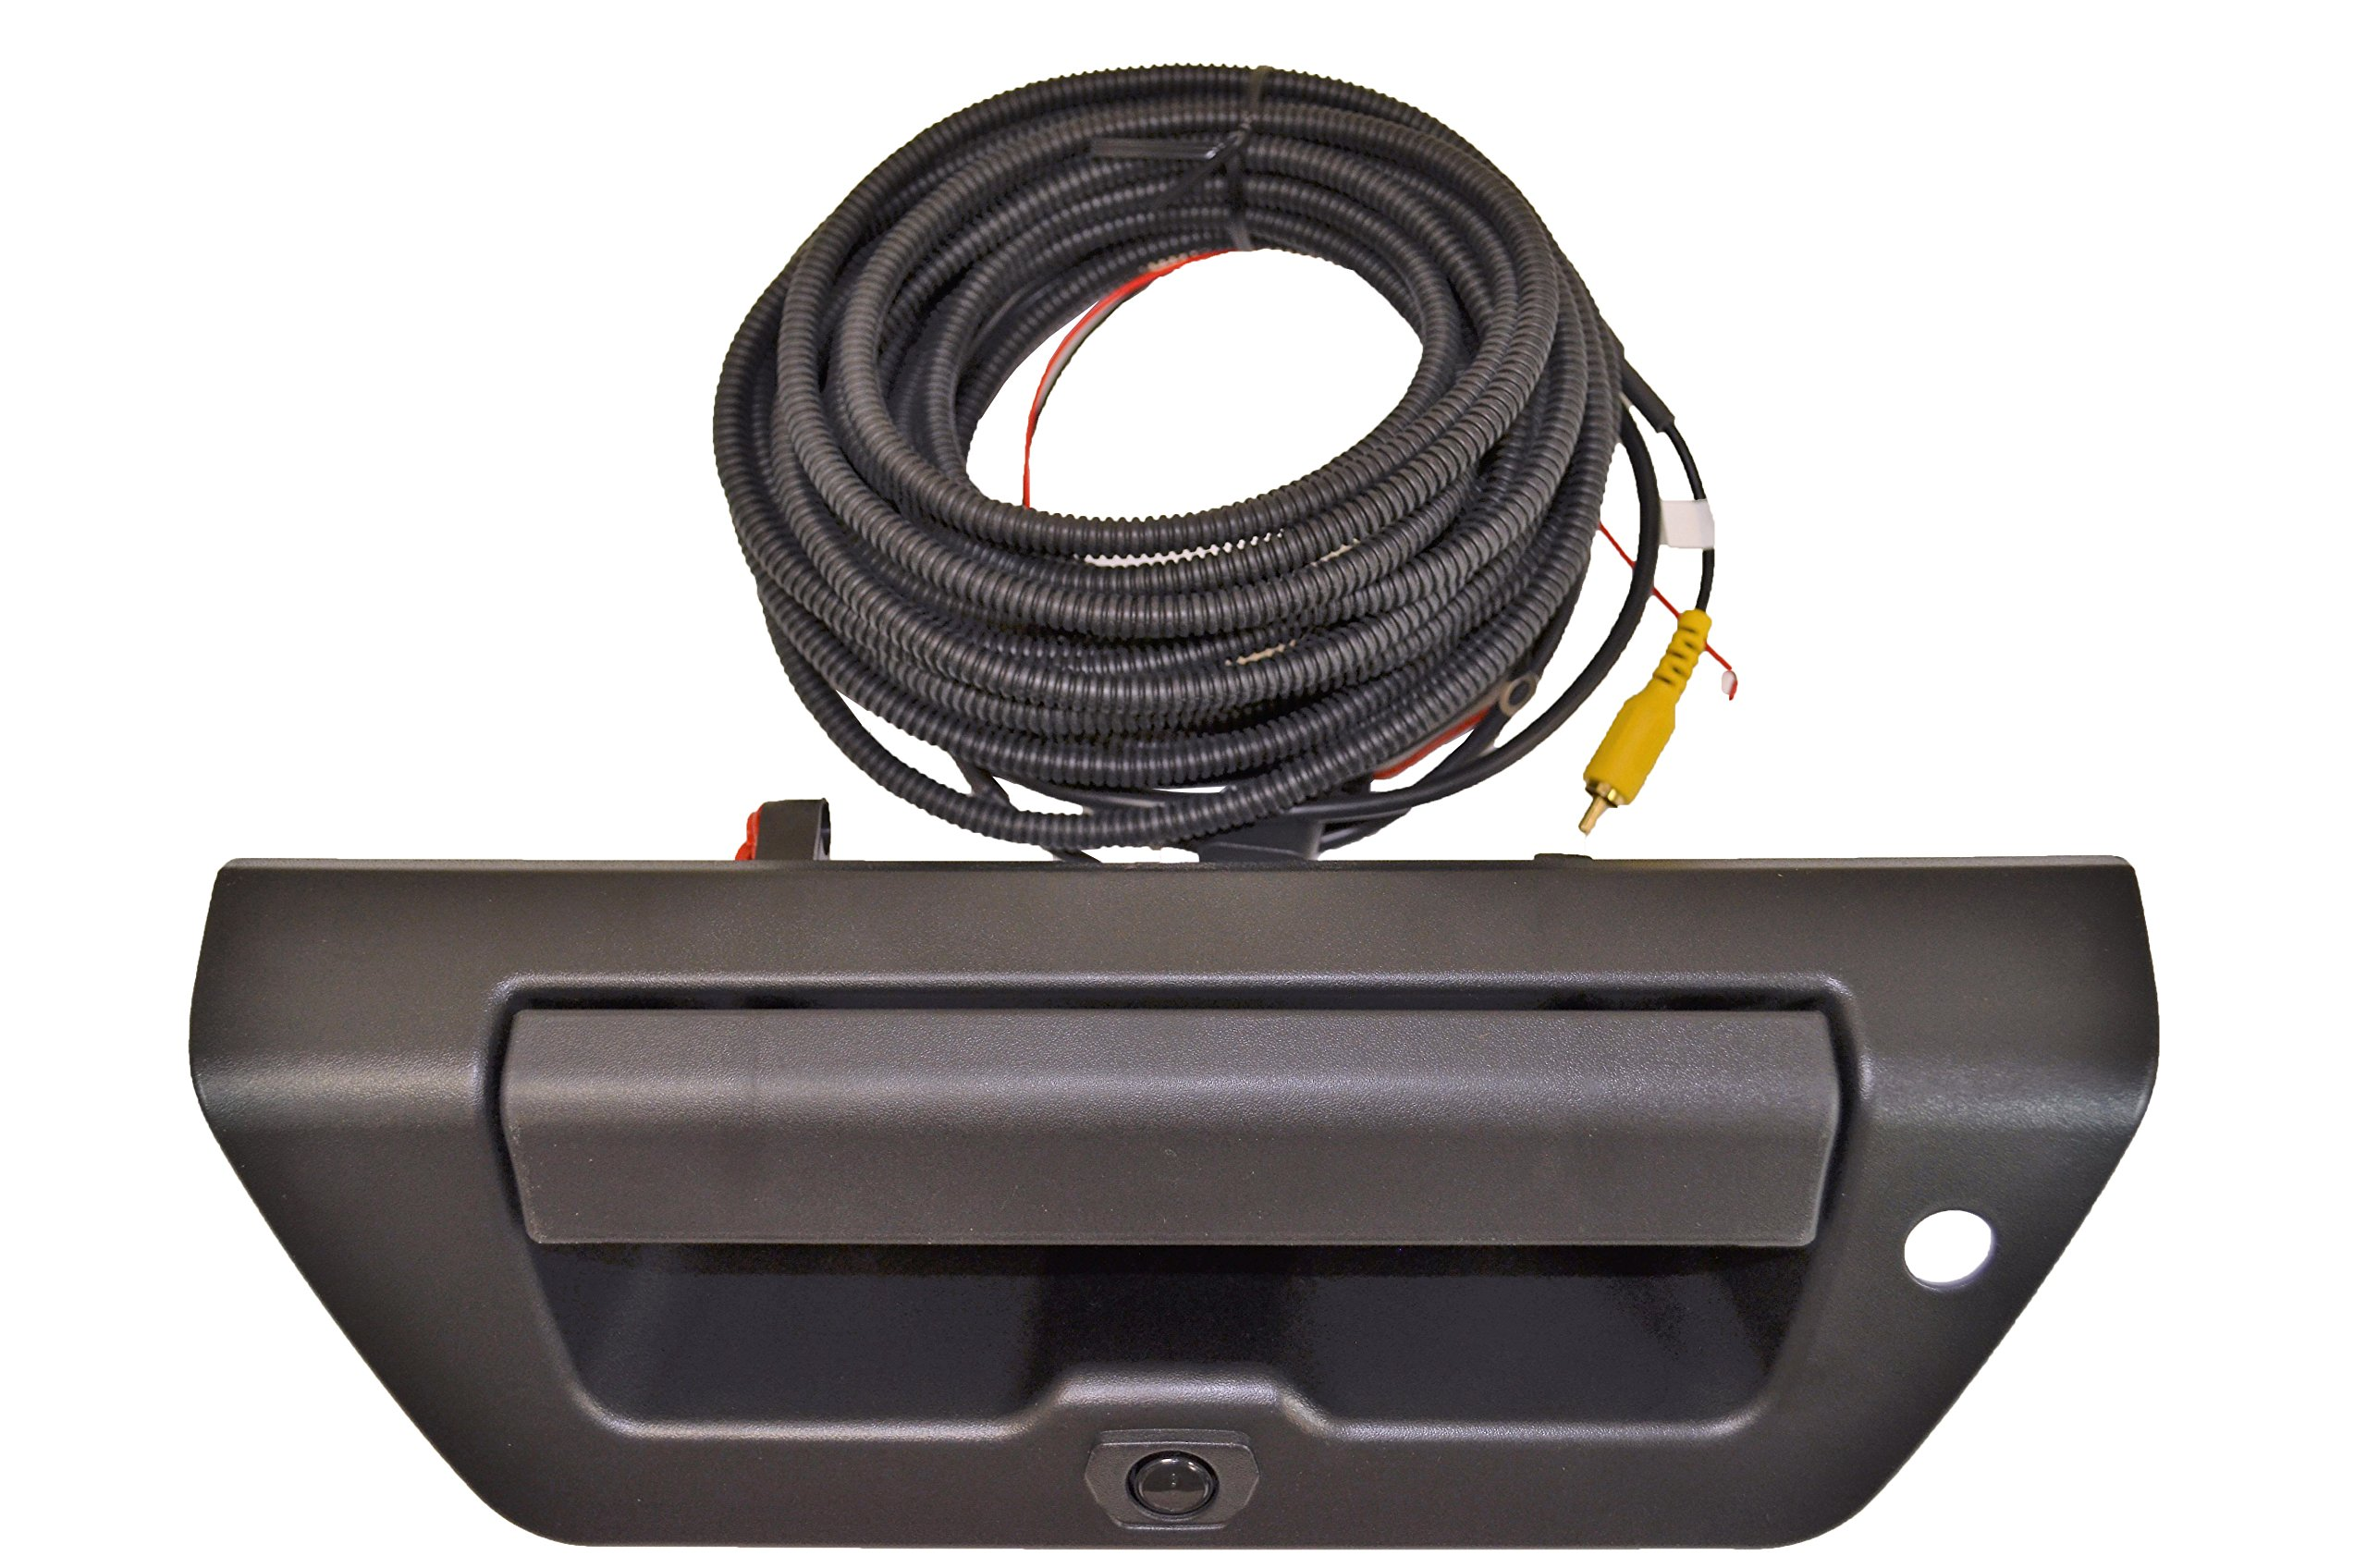 PT Auto Warehouse FO-3515A-TGCX - Tailgate Handle with Backup Camera, Textured Black Housing and Lever - with Keyhole Hole, for Manual Tailgate by PT Auto Warehouse